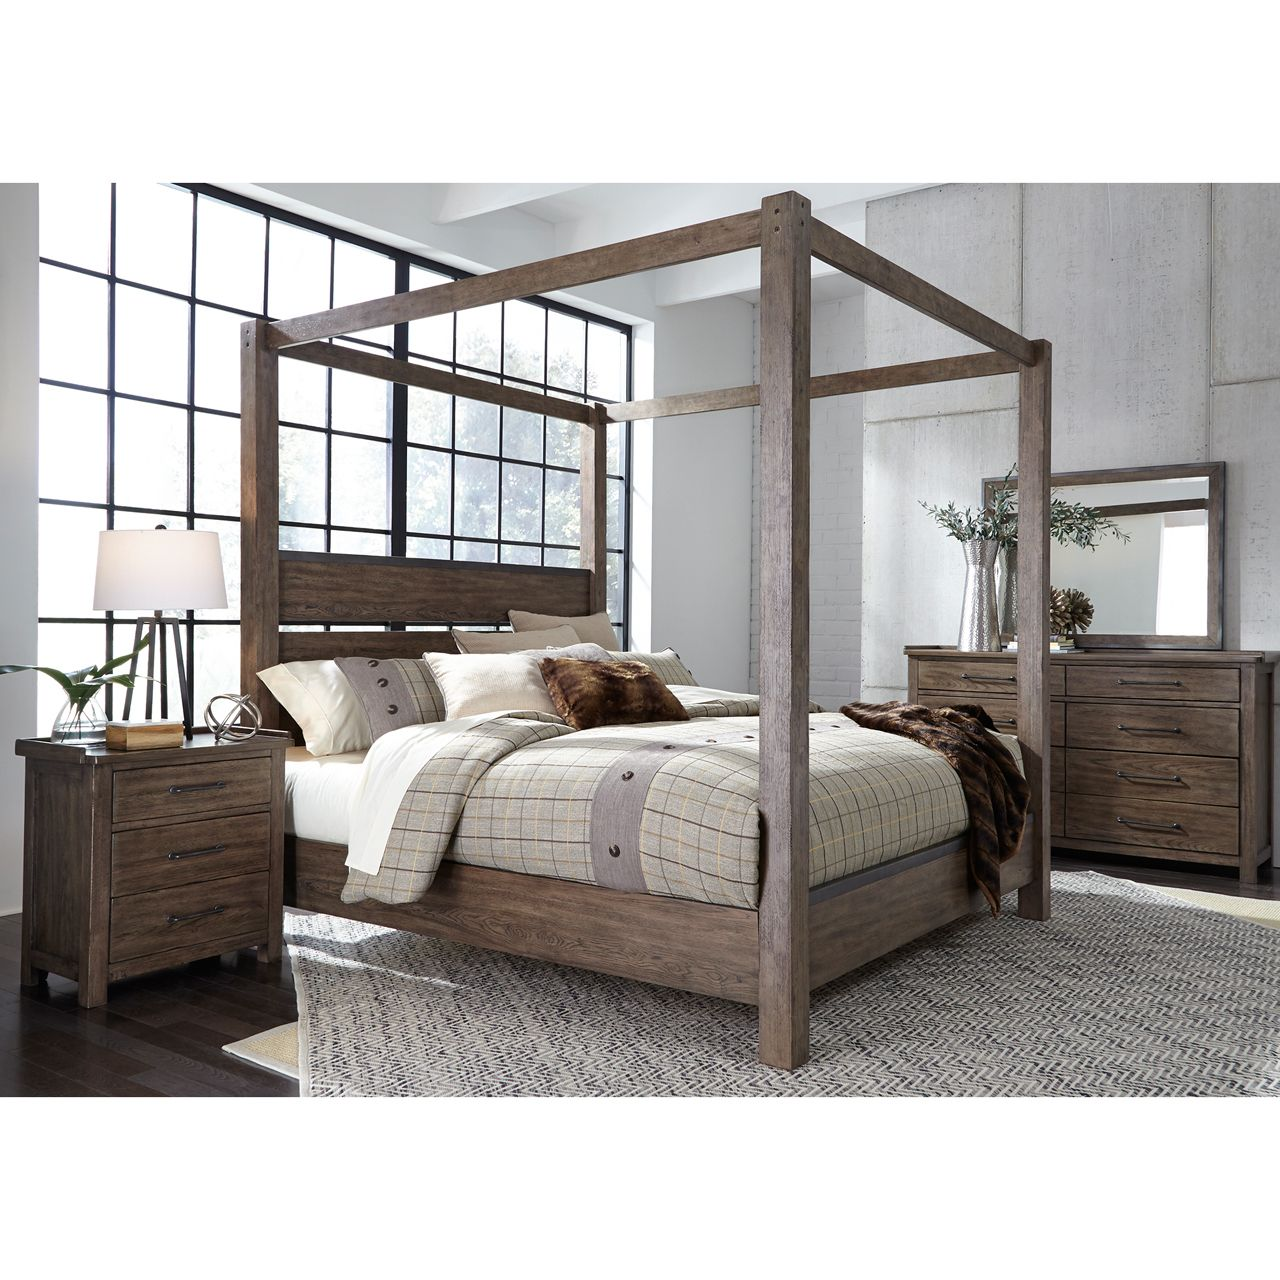 Sonoma road canopy bed Queen canopy bed, Bed, King bedroom